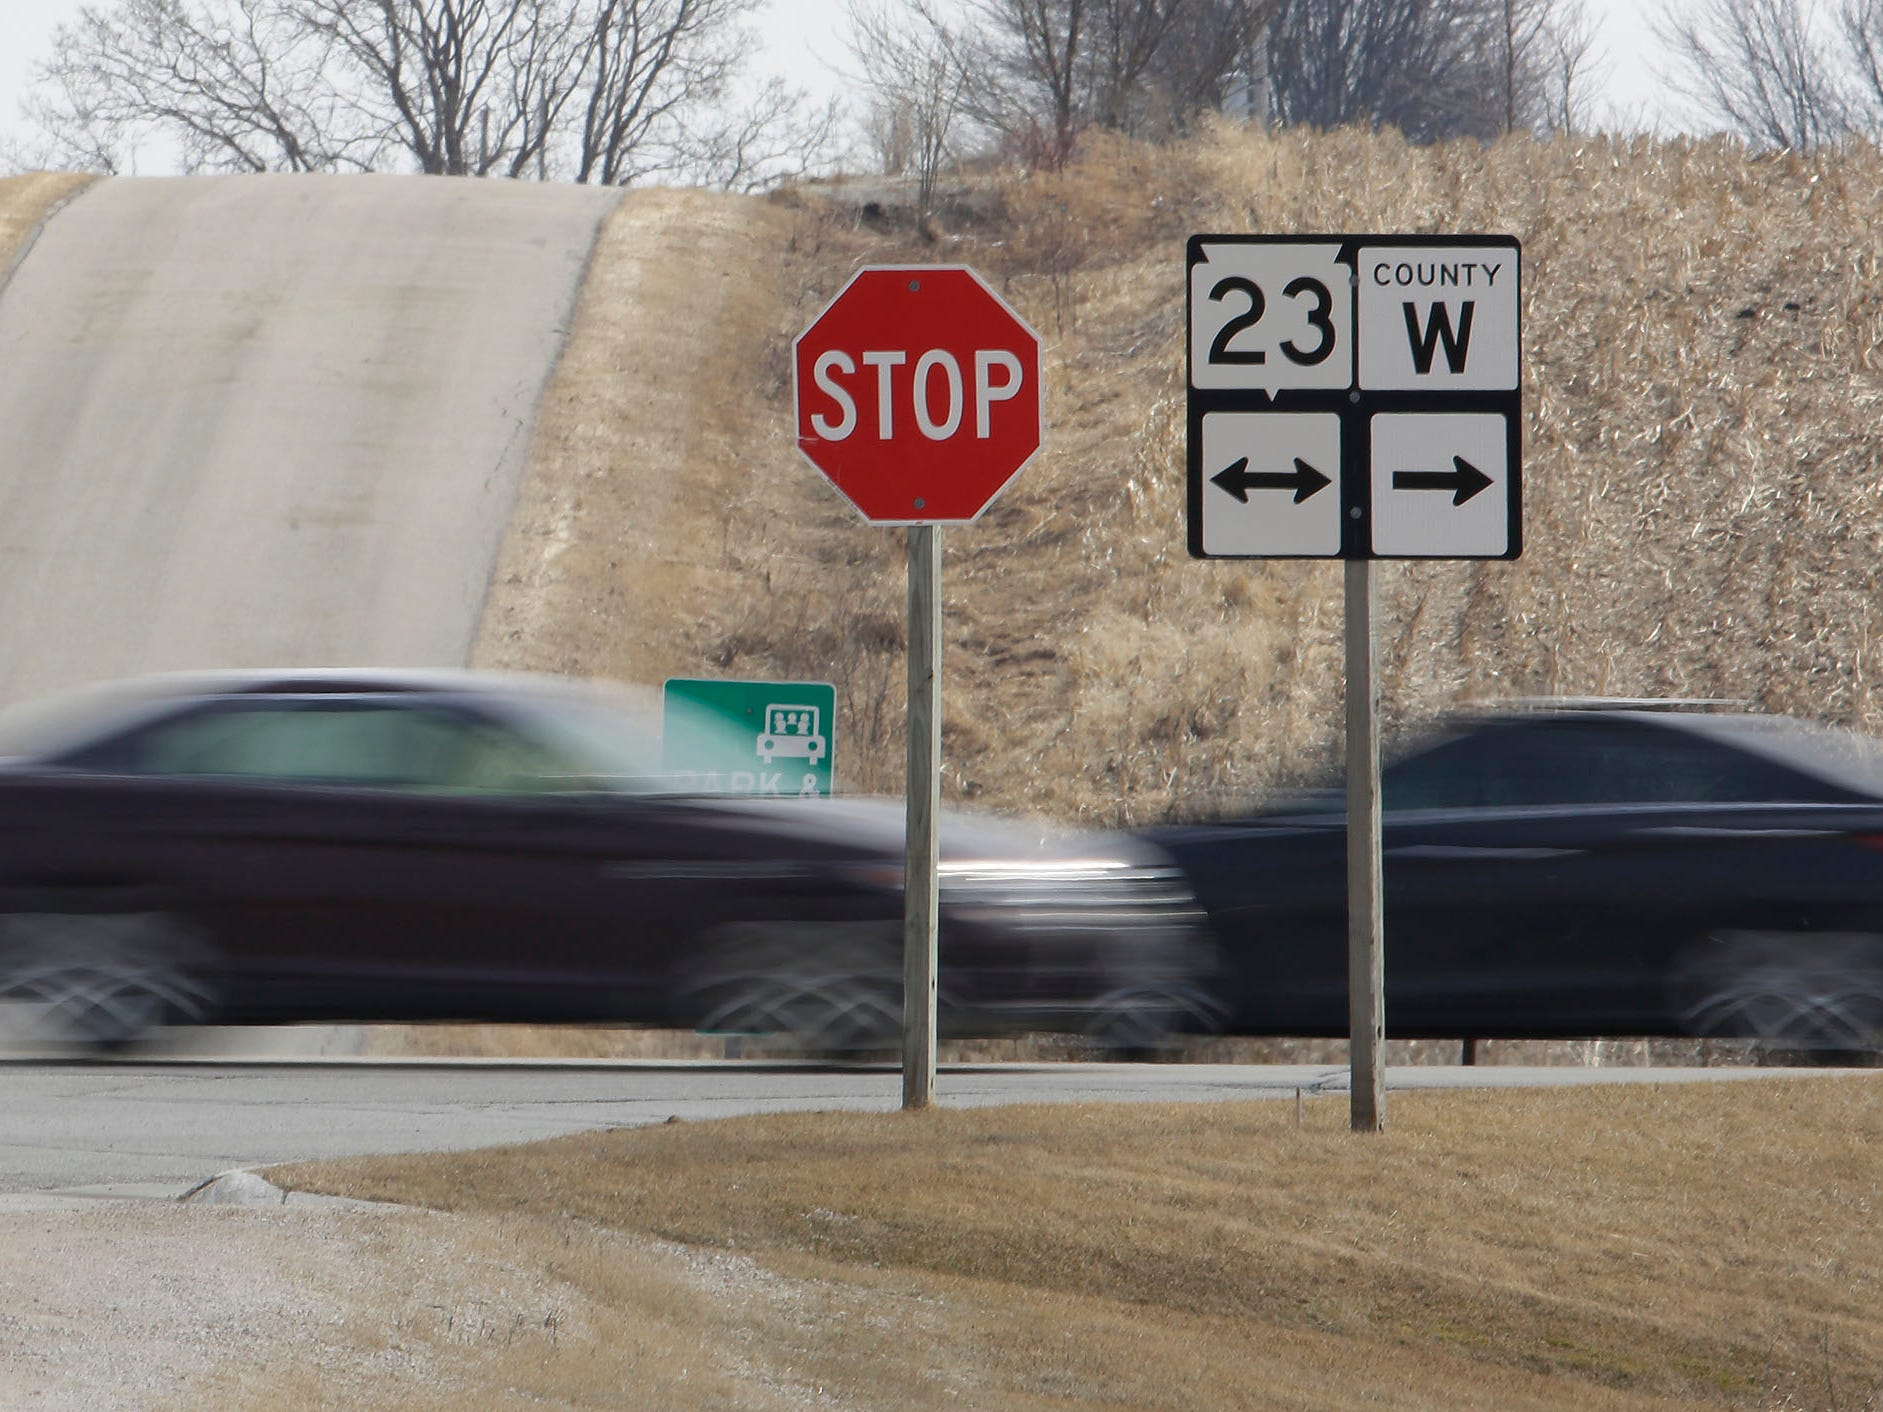 Vehicles are a blur of travel on state Highway 23, Wednesday, March 27, 2019, near St. Cloud, Wis.  The state said it will start construction on the highway to develop the road as four-lane highway between Sheboygan and Fon du Lac.